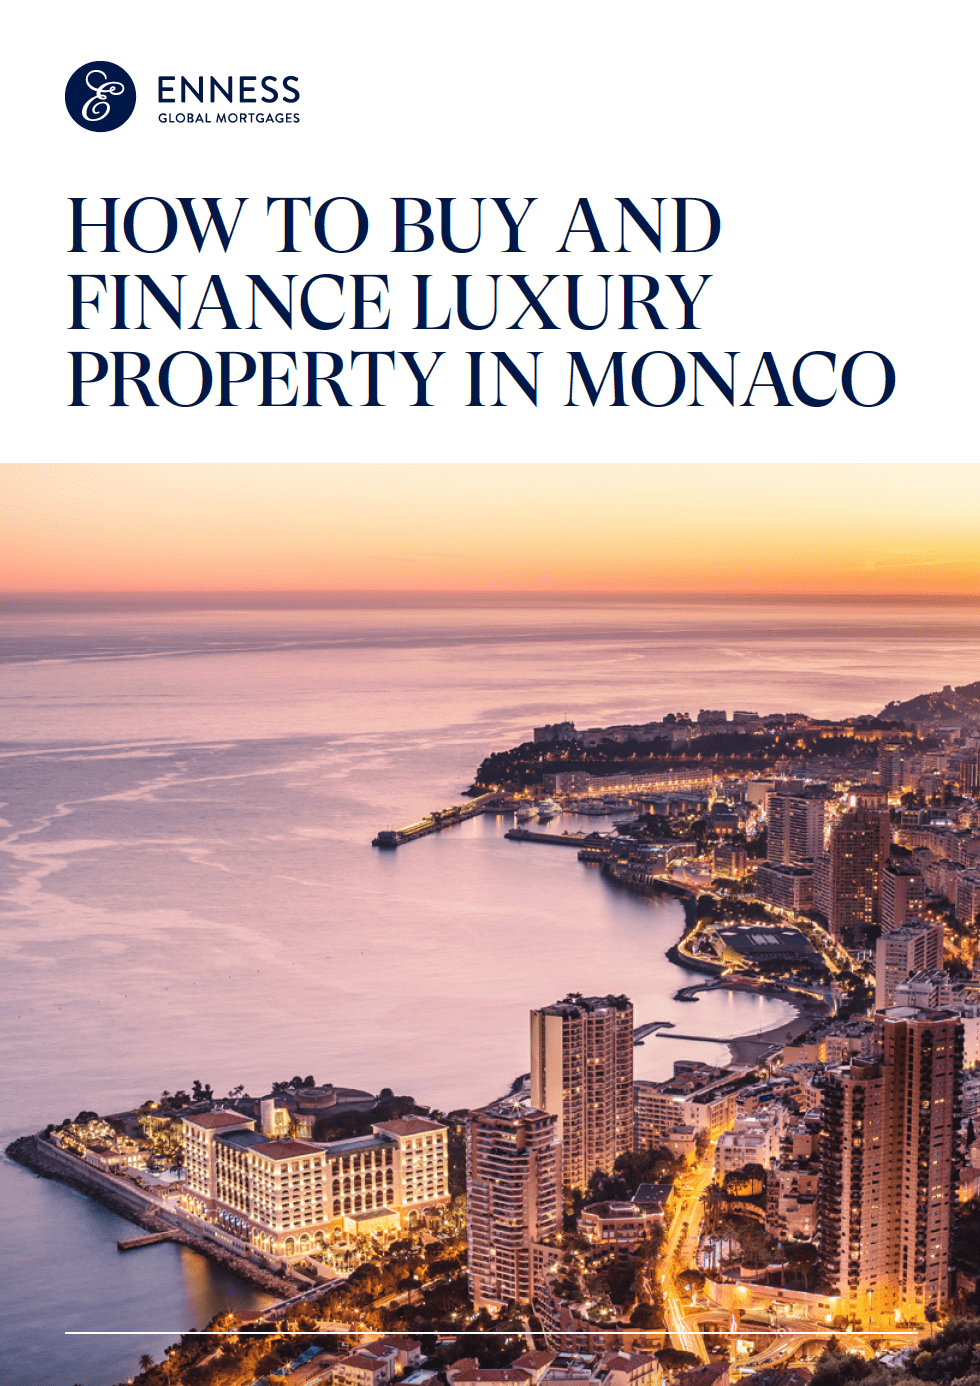 How to Buy and Finance Luxury Property in Monaco